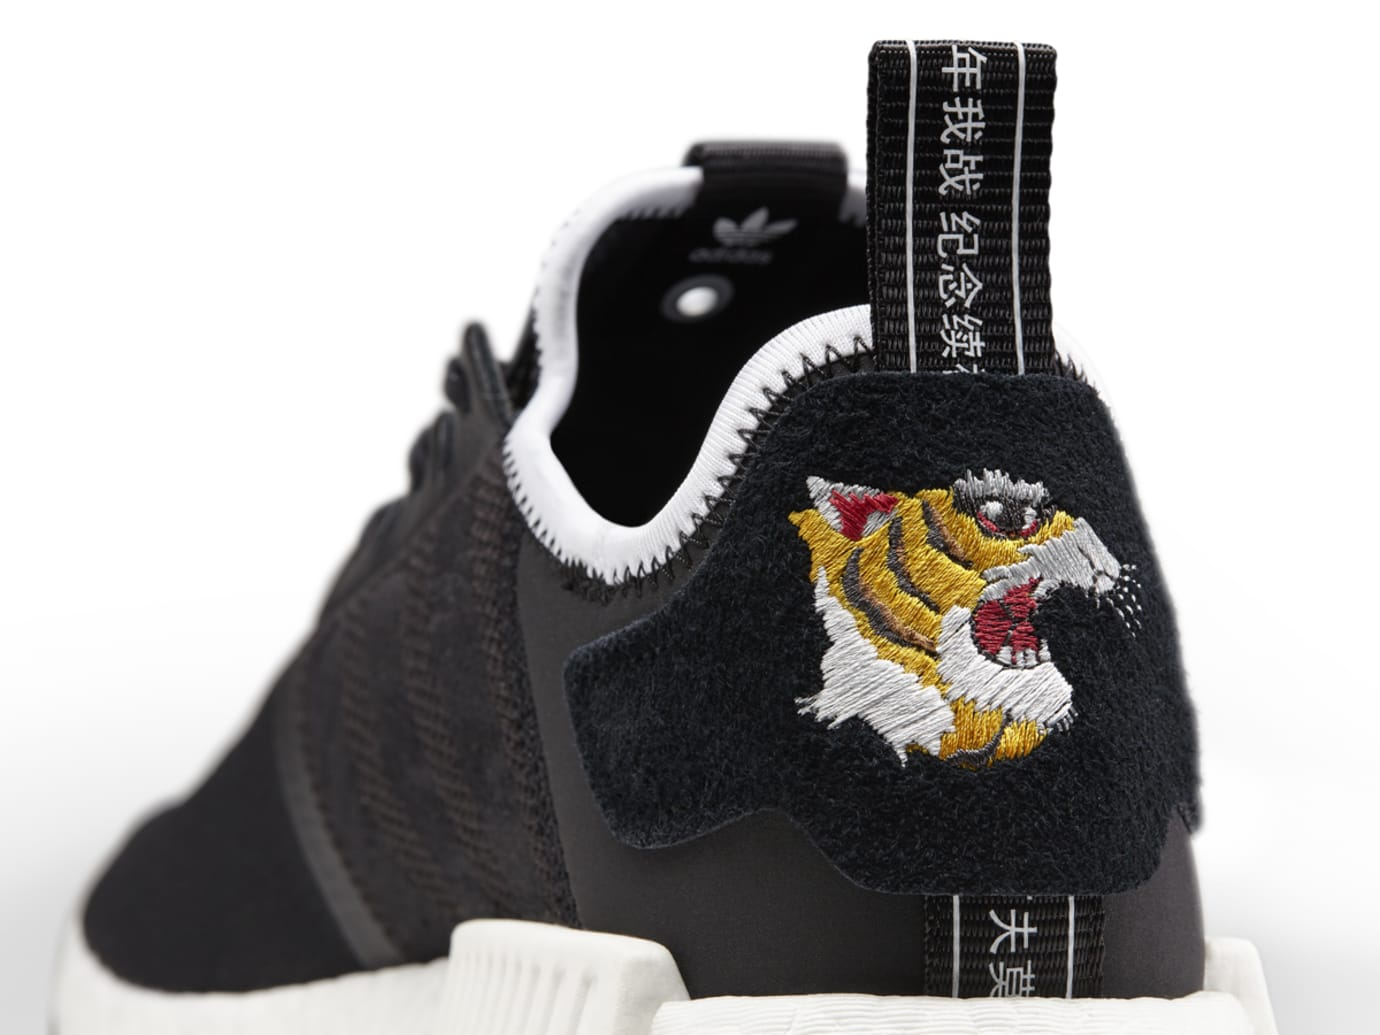 reputable site 116c2 7efcd Neighborhood Invincible Adidas NMD R1 CQ1775 | Sole Collector